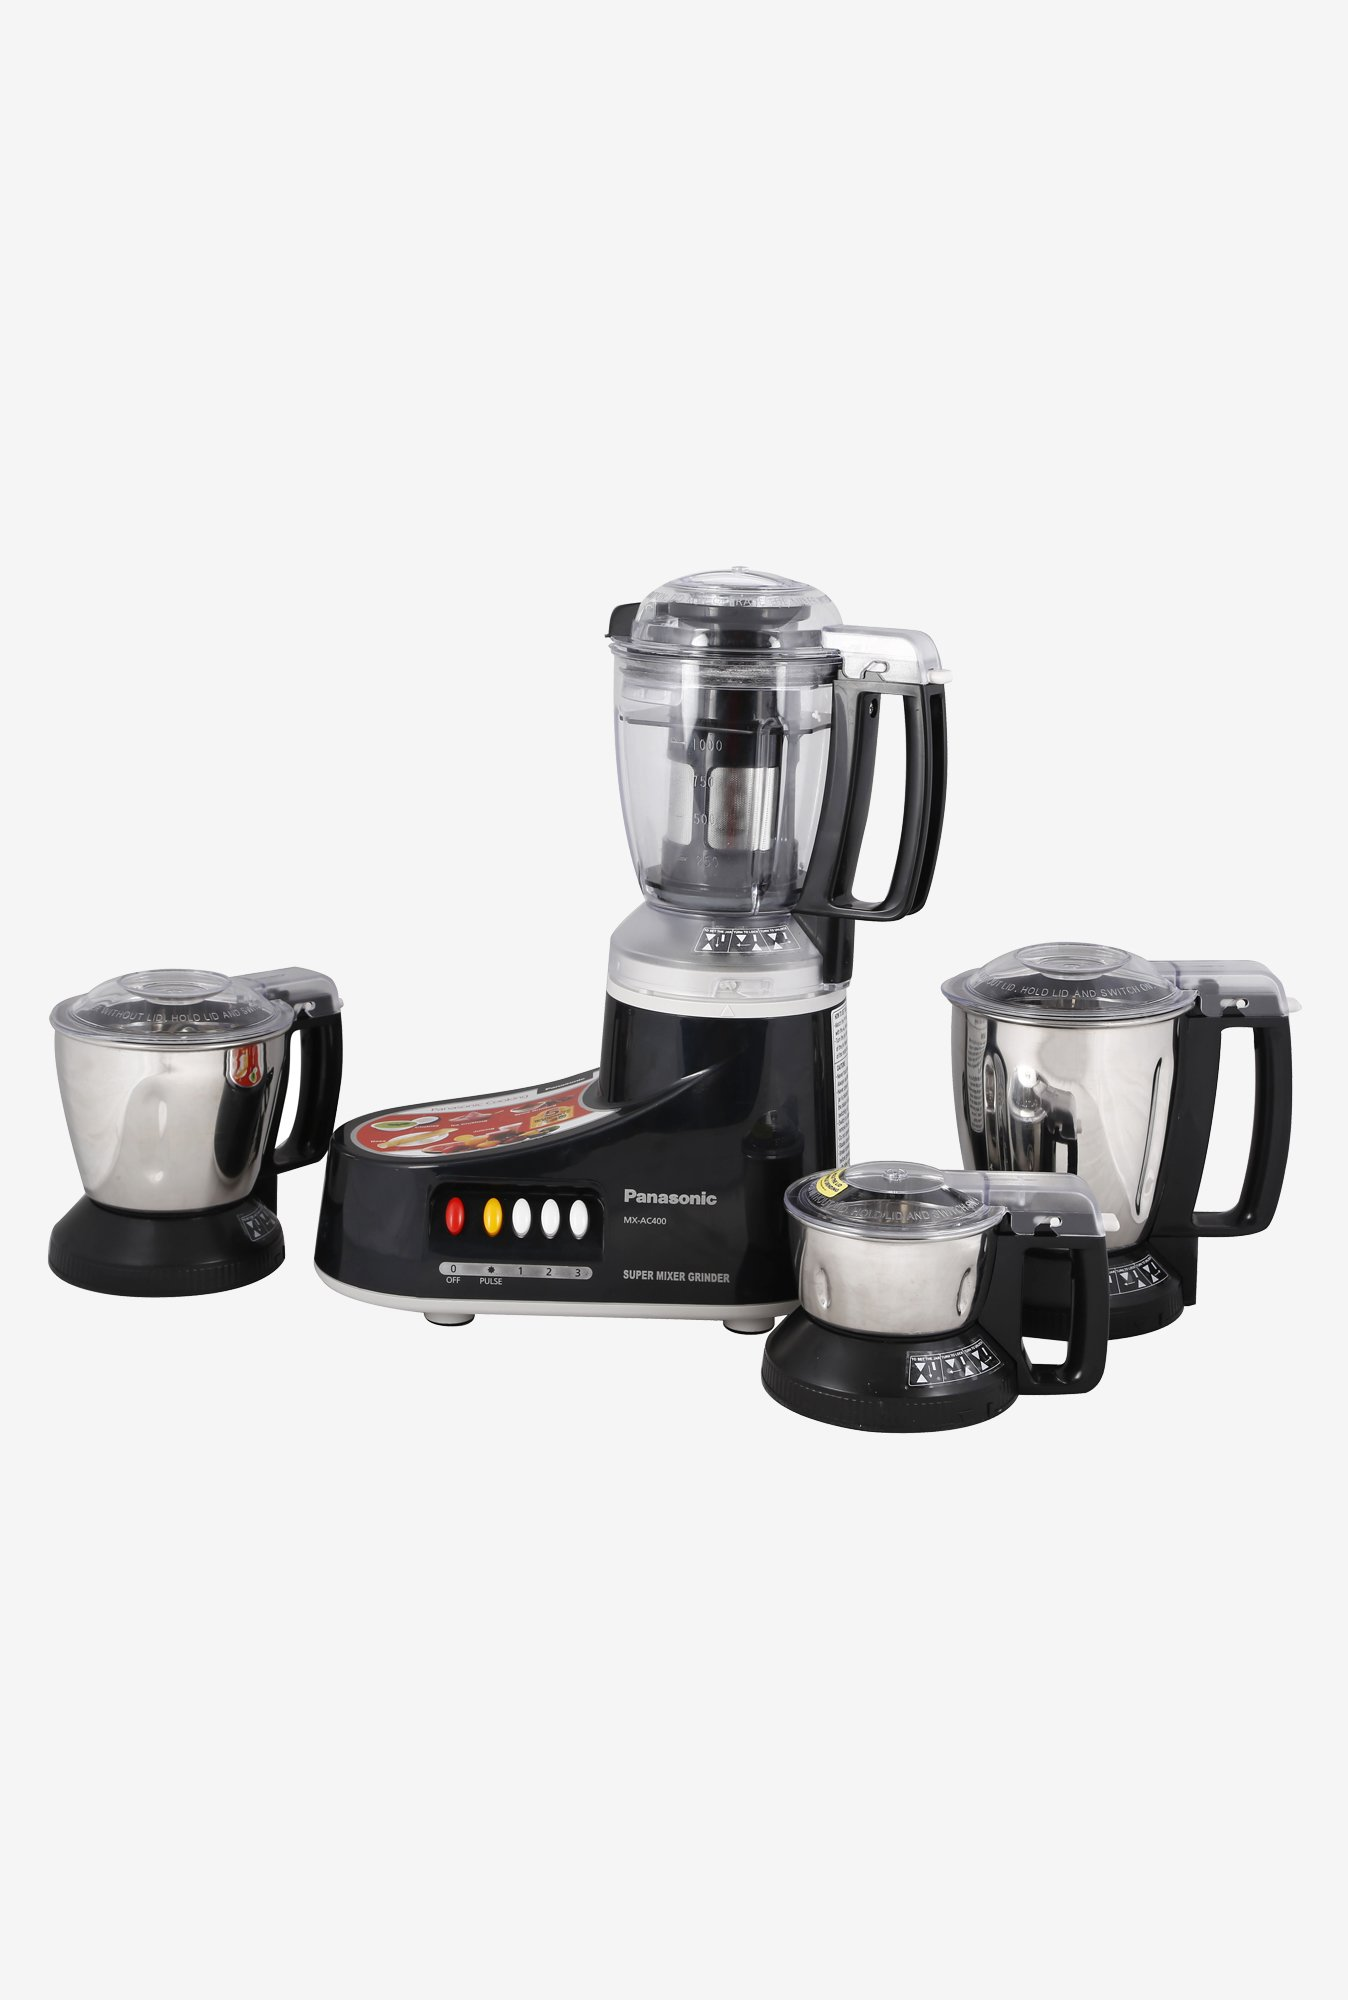 PANASONIC MX-AC400 Mixer Grinder Black